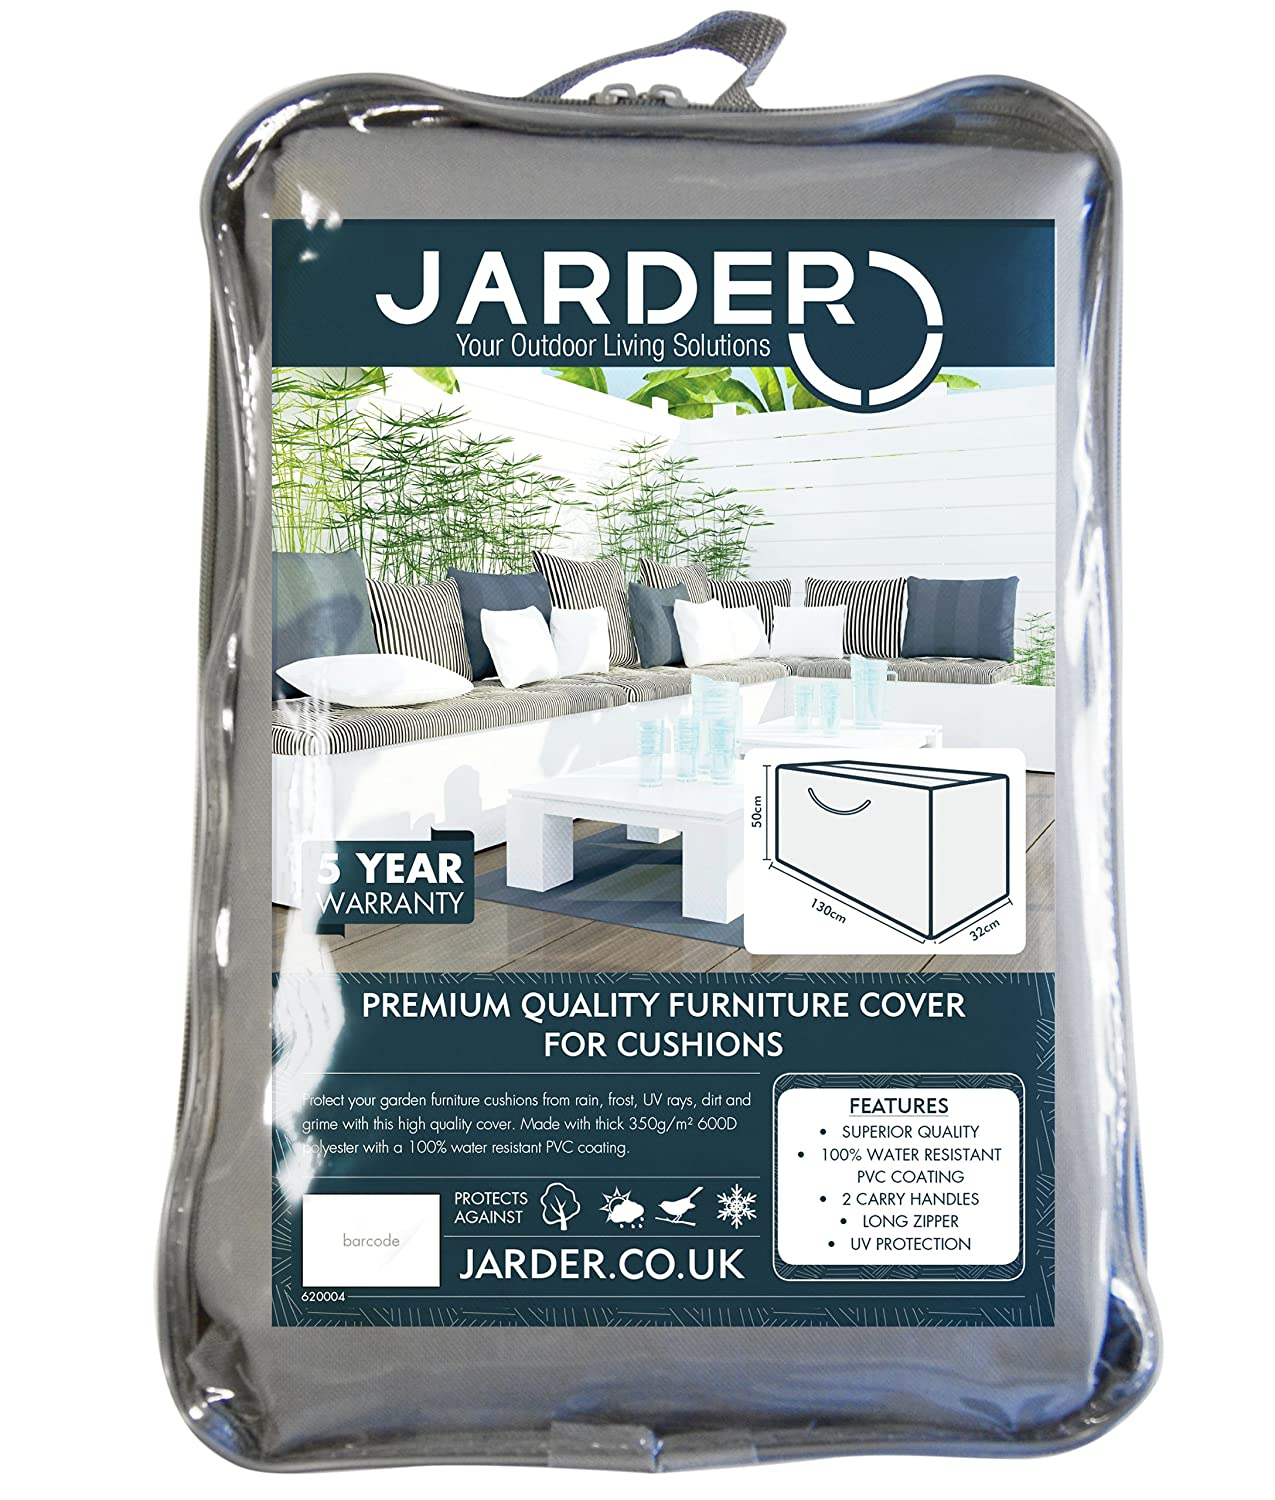 Jarder Garden Cushion Storage Bag, Superior Quality, 100% Water Resistant:  Amazon.co.uk: Garden U0026 Outdoors Part 74